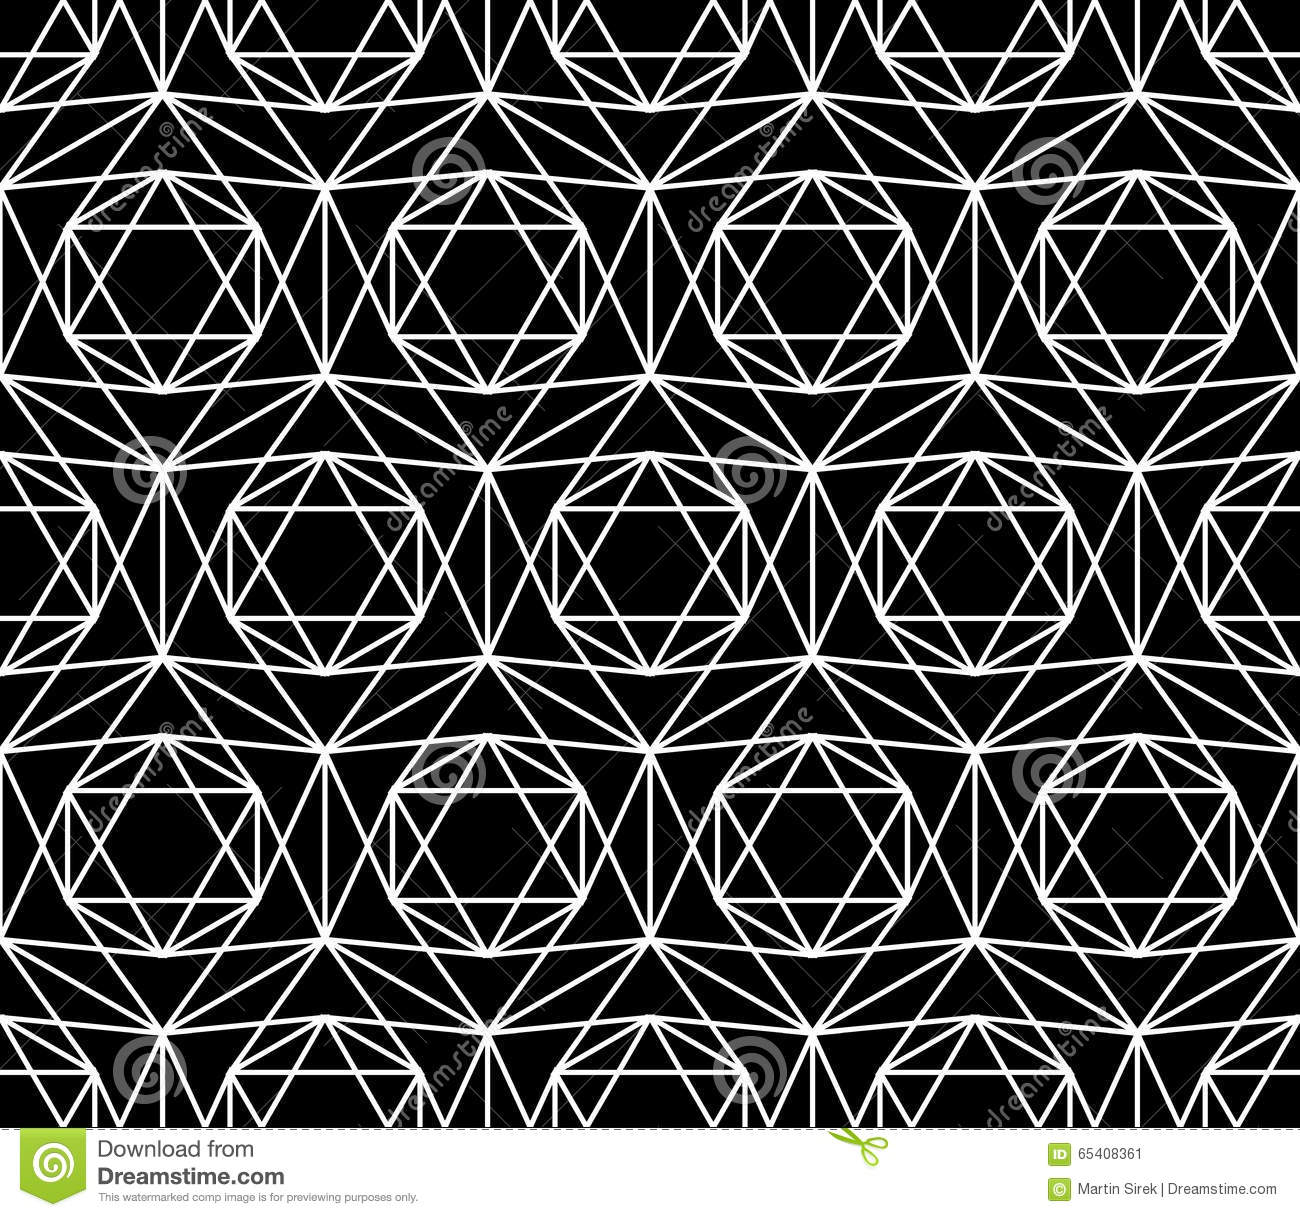 Vector Modern Seamless Sacred Geometry Pattern Star Black And White Abstract Illustration 65408361 Megapixl